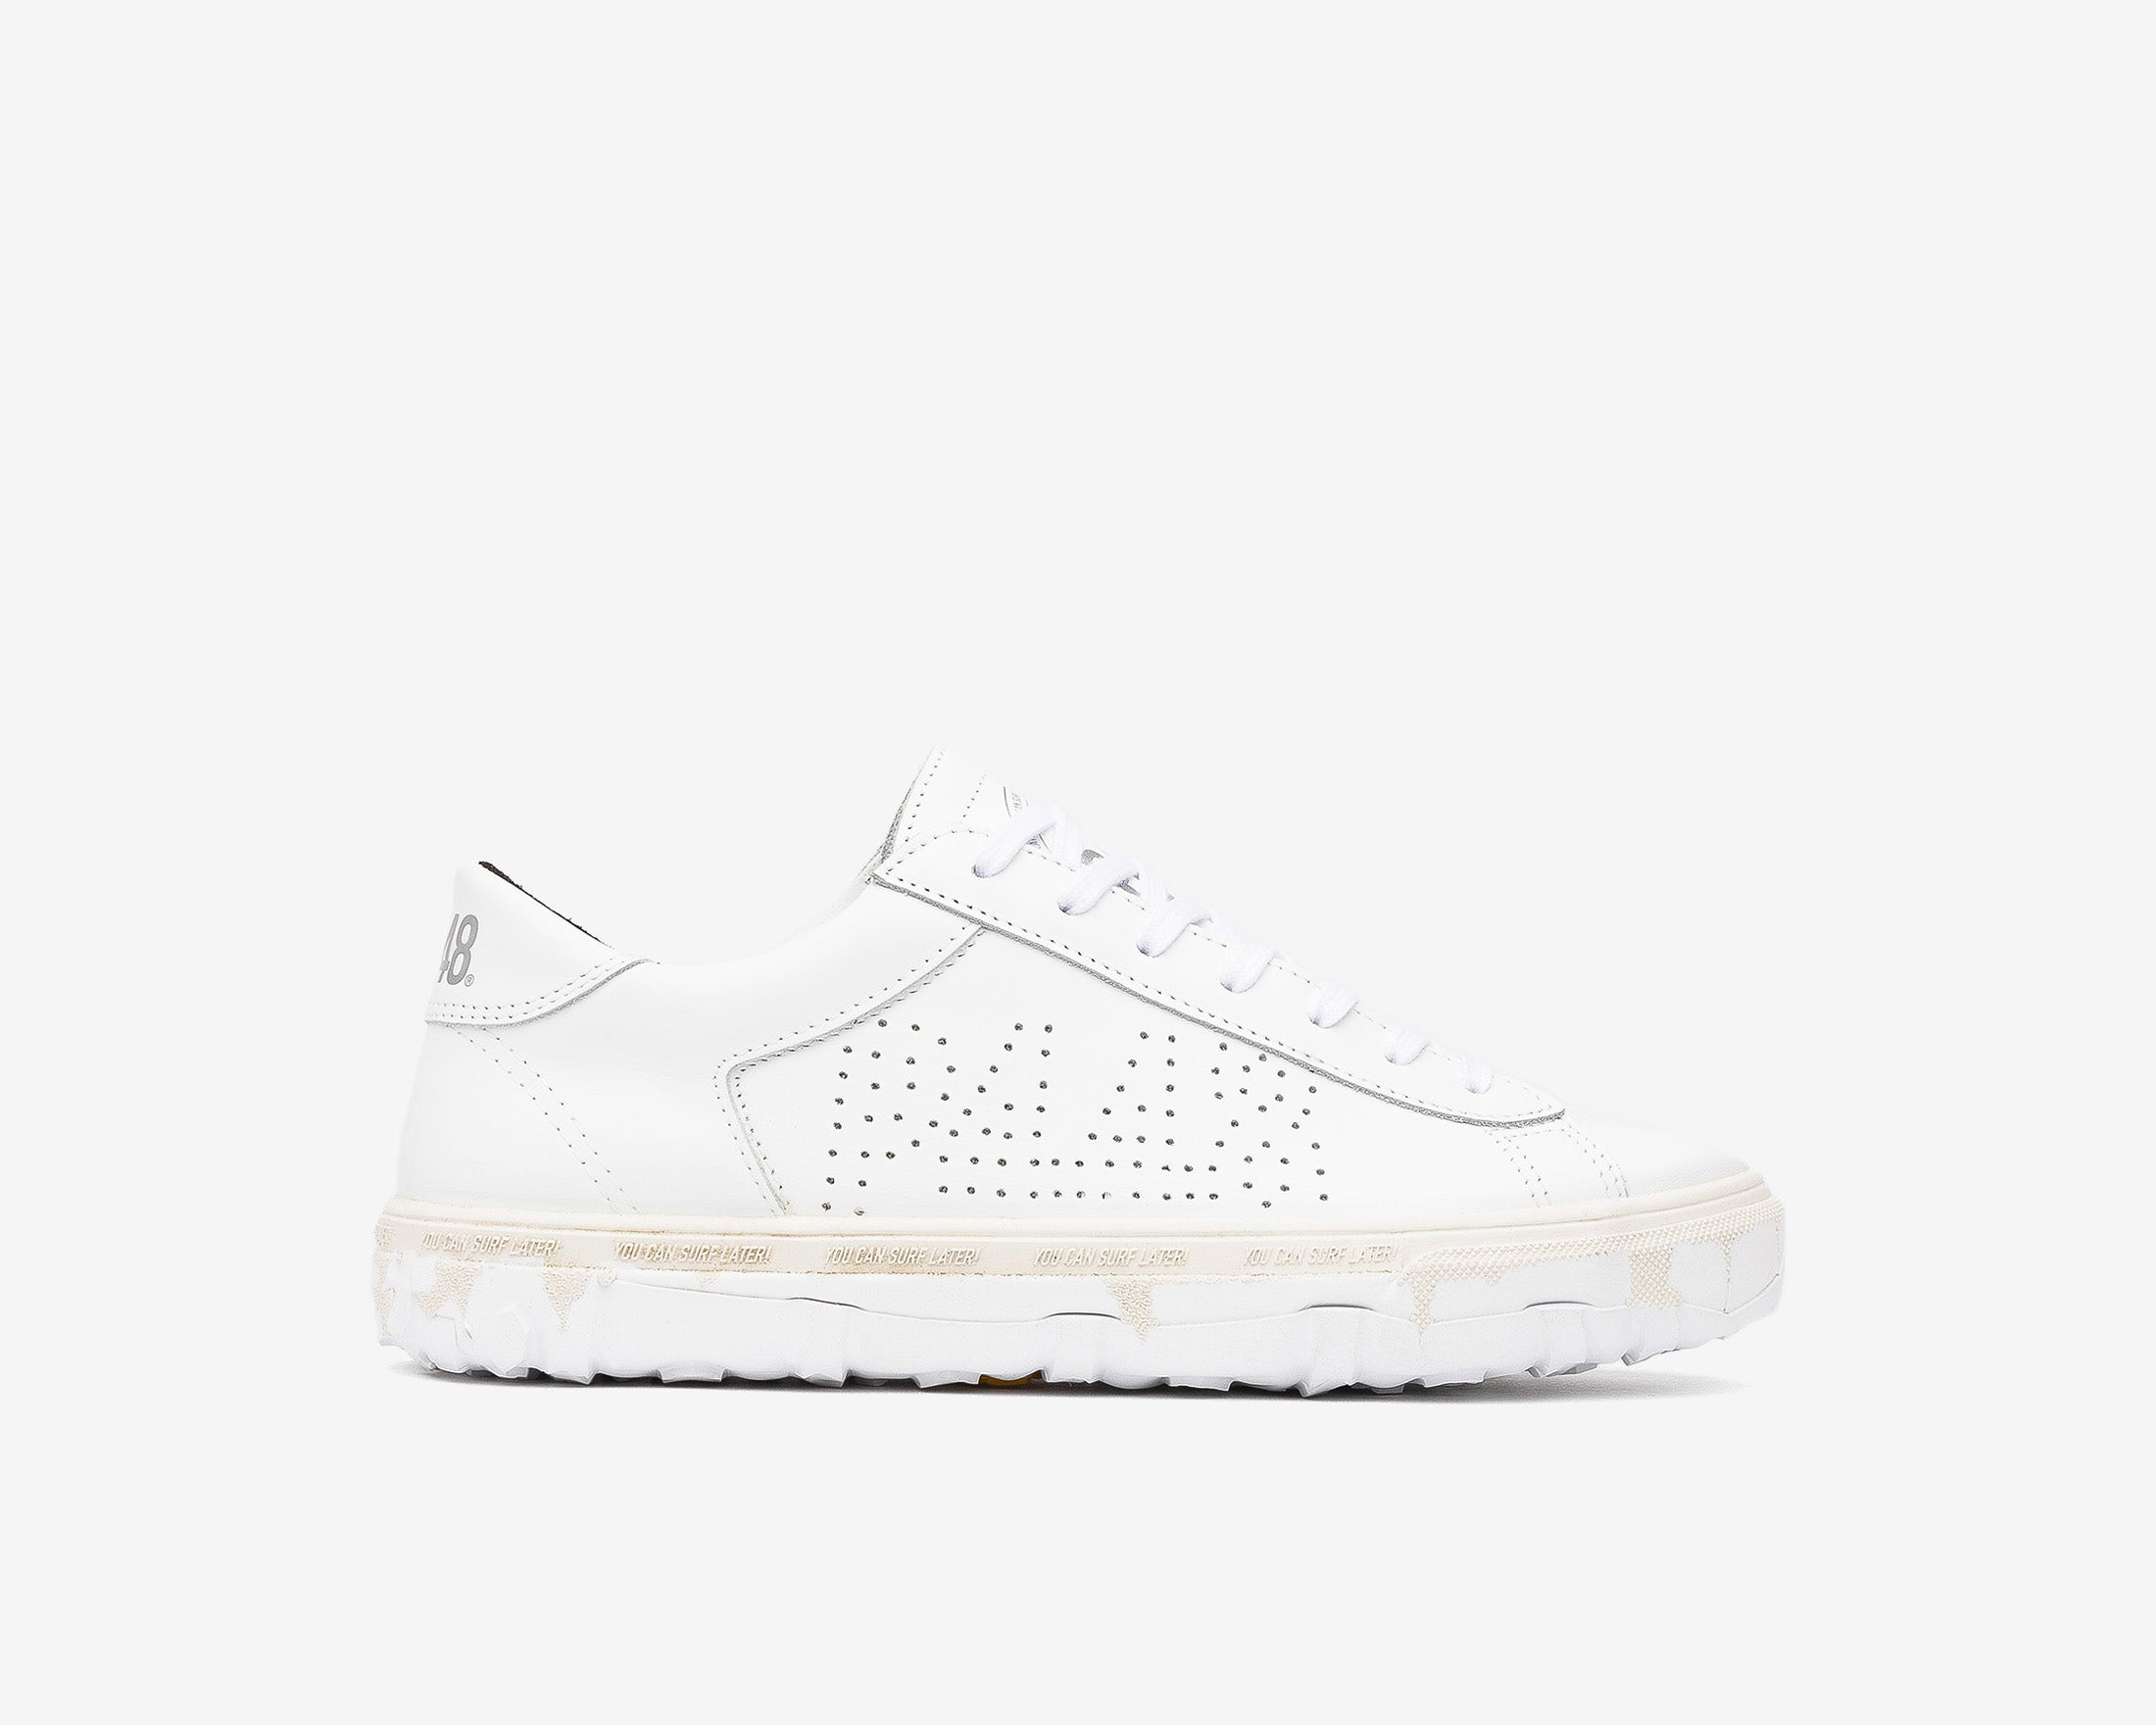 Y.C.S.L. Vibram Low-Top Sneaker in White/White - Profile